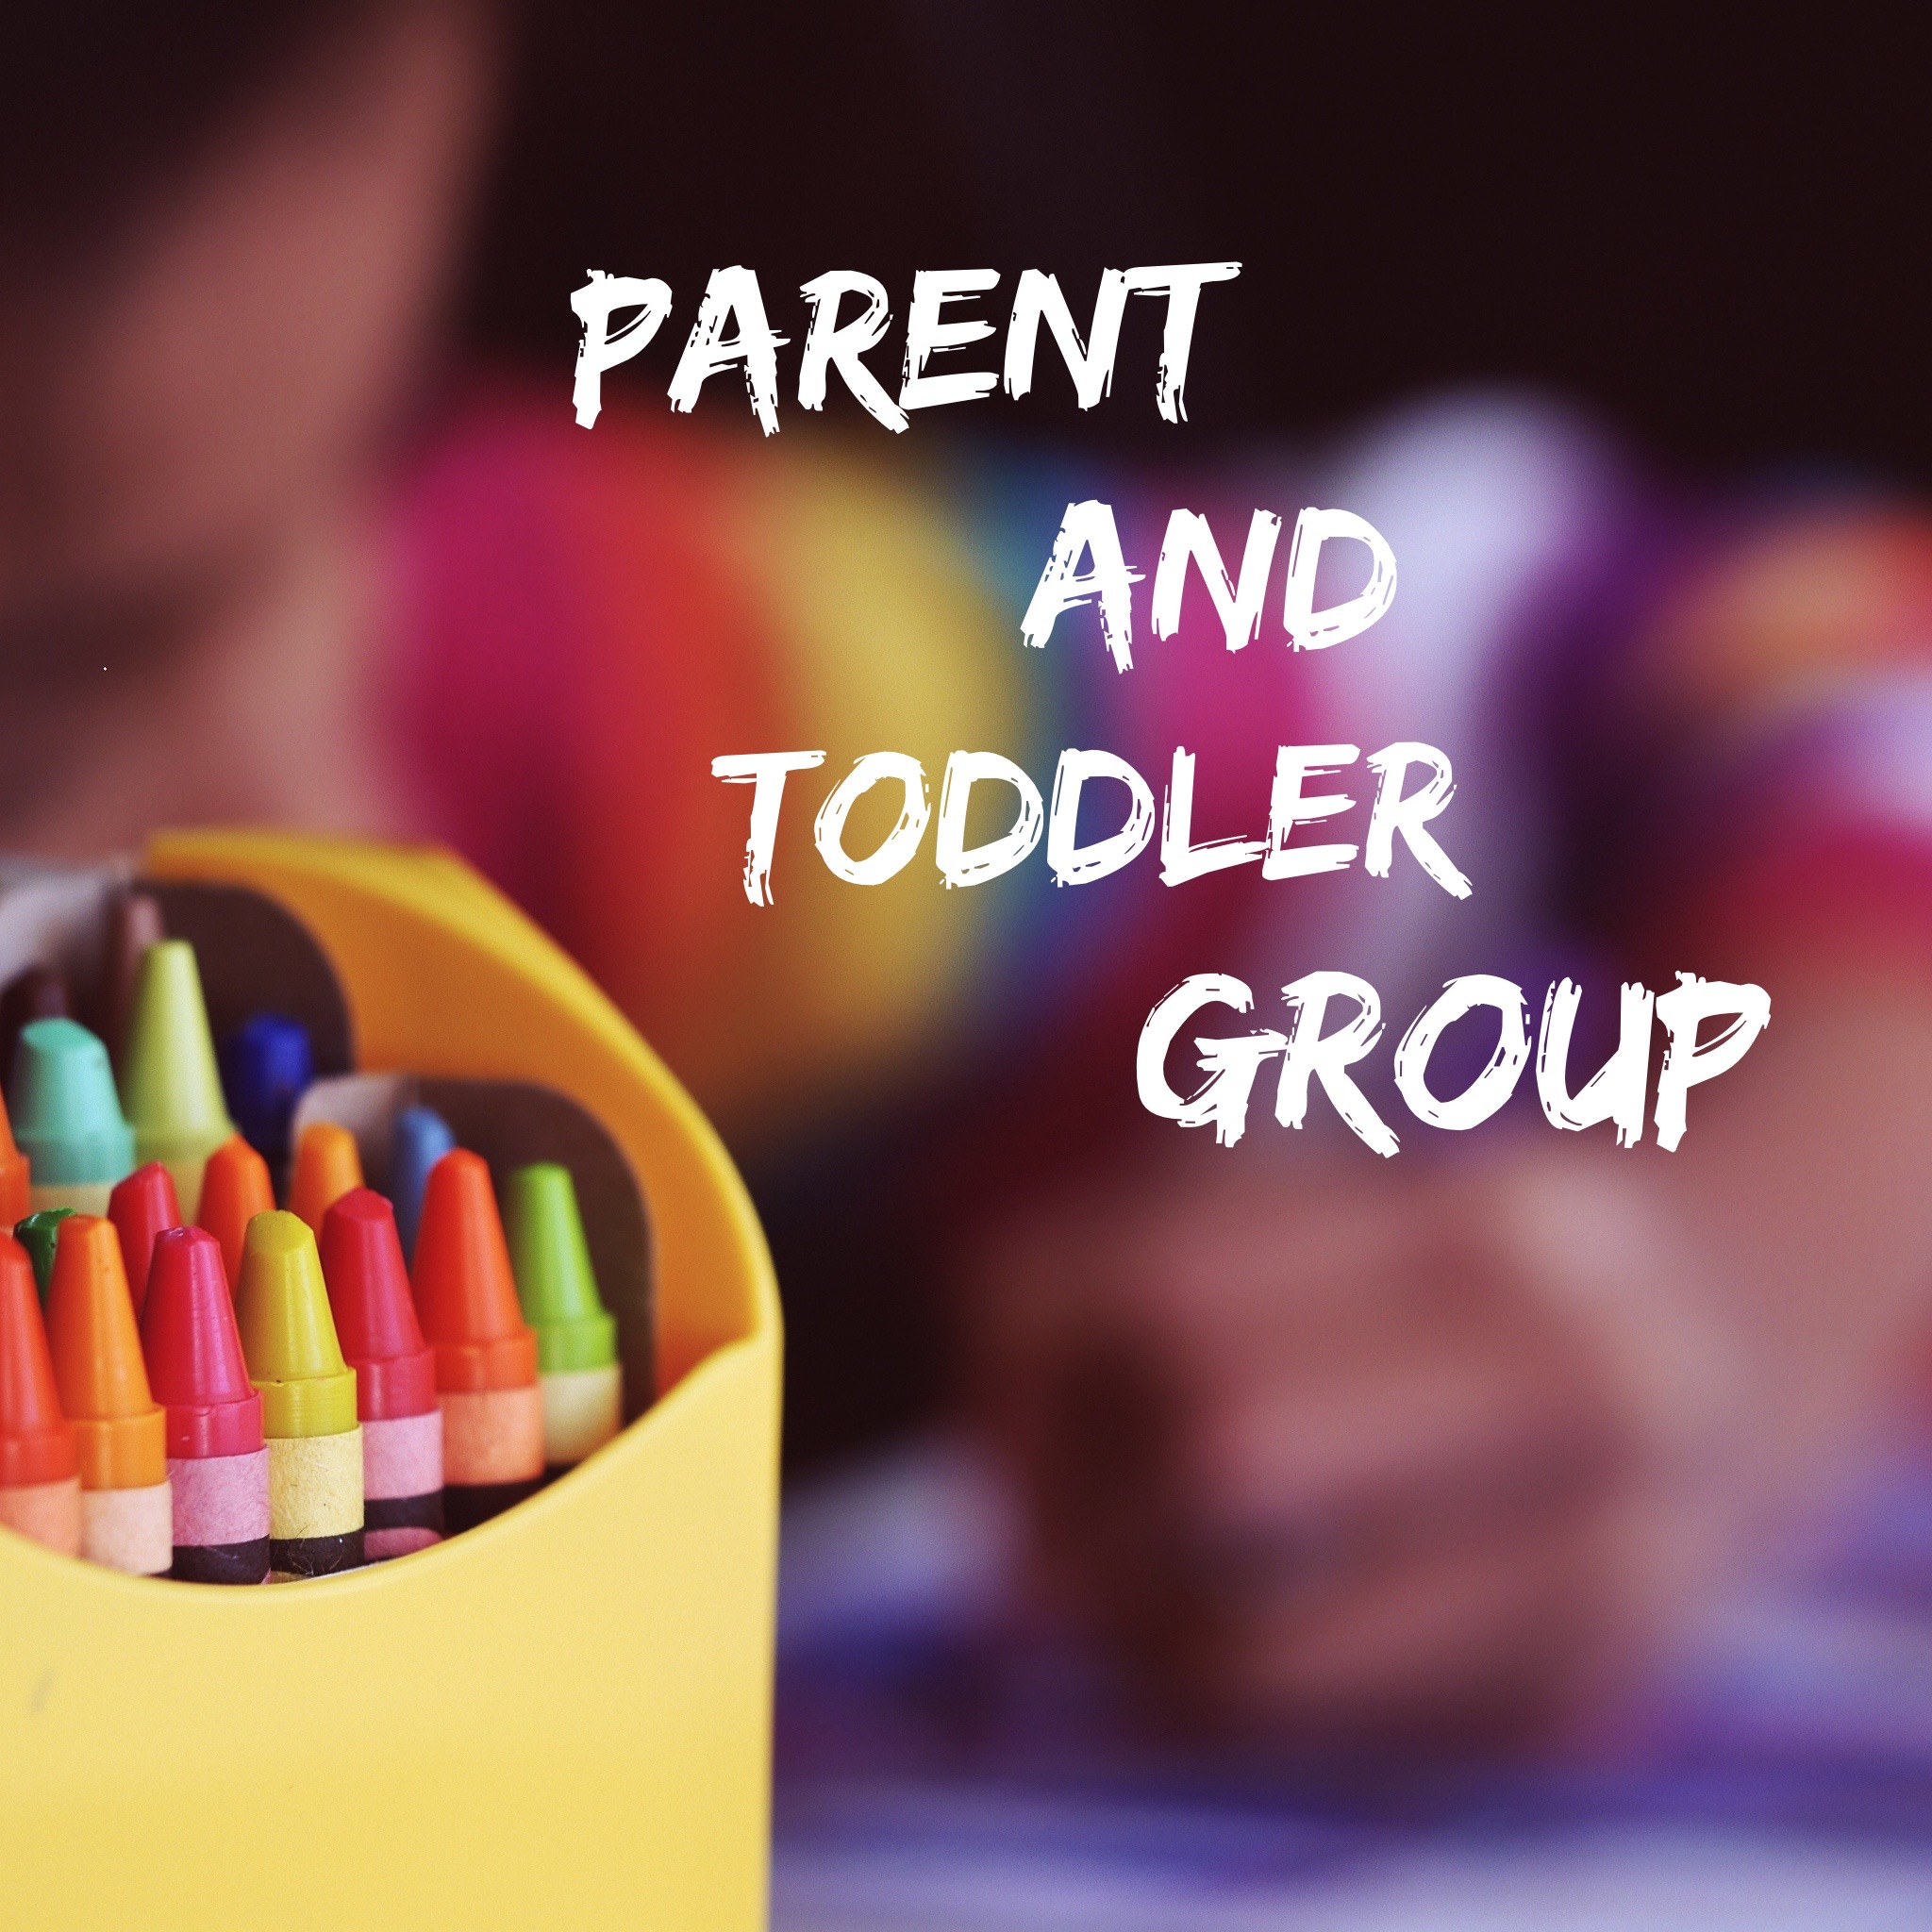 Parents and Toddlers